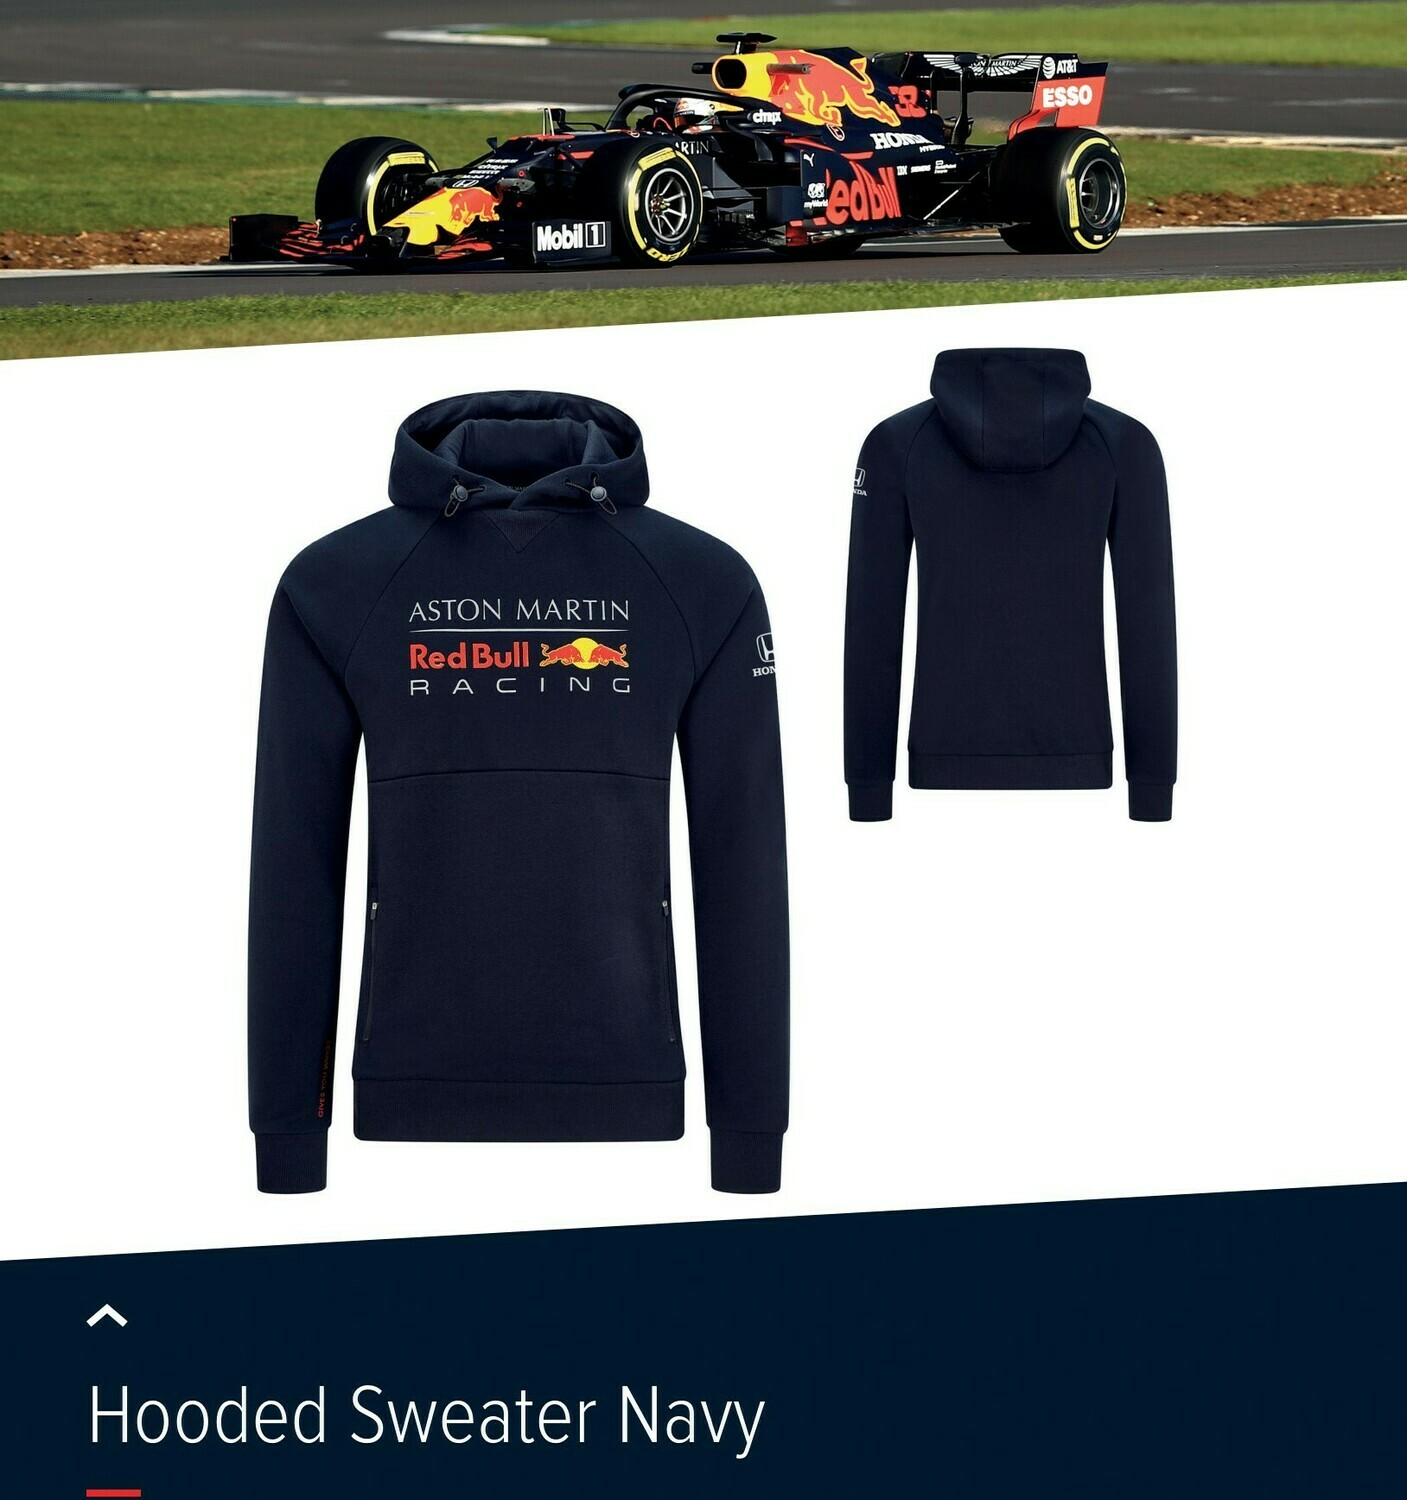 Aston Martin Red Bull Racing Hooded Sweater Navy 2020 Hace Formula 1